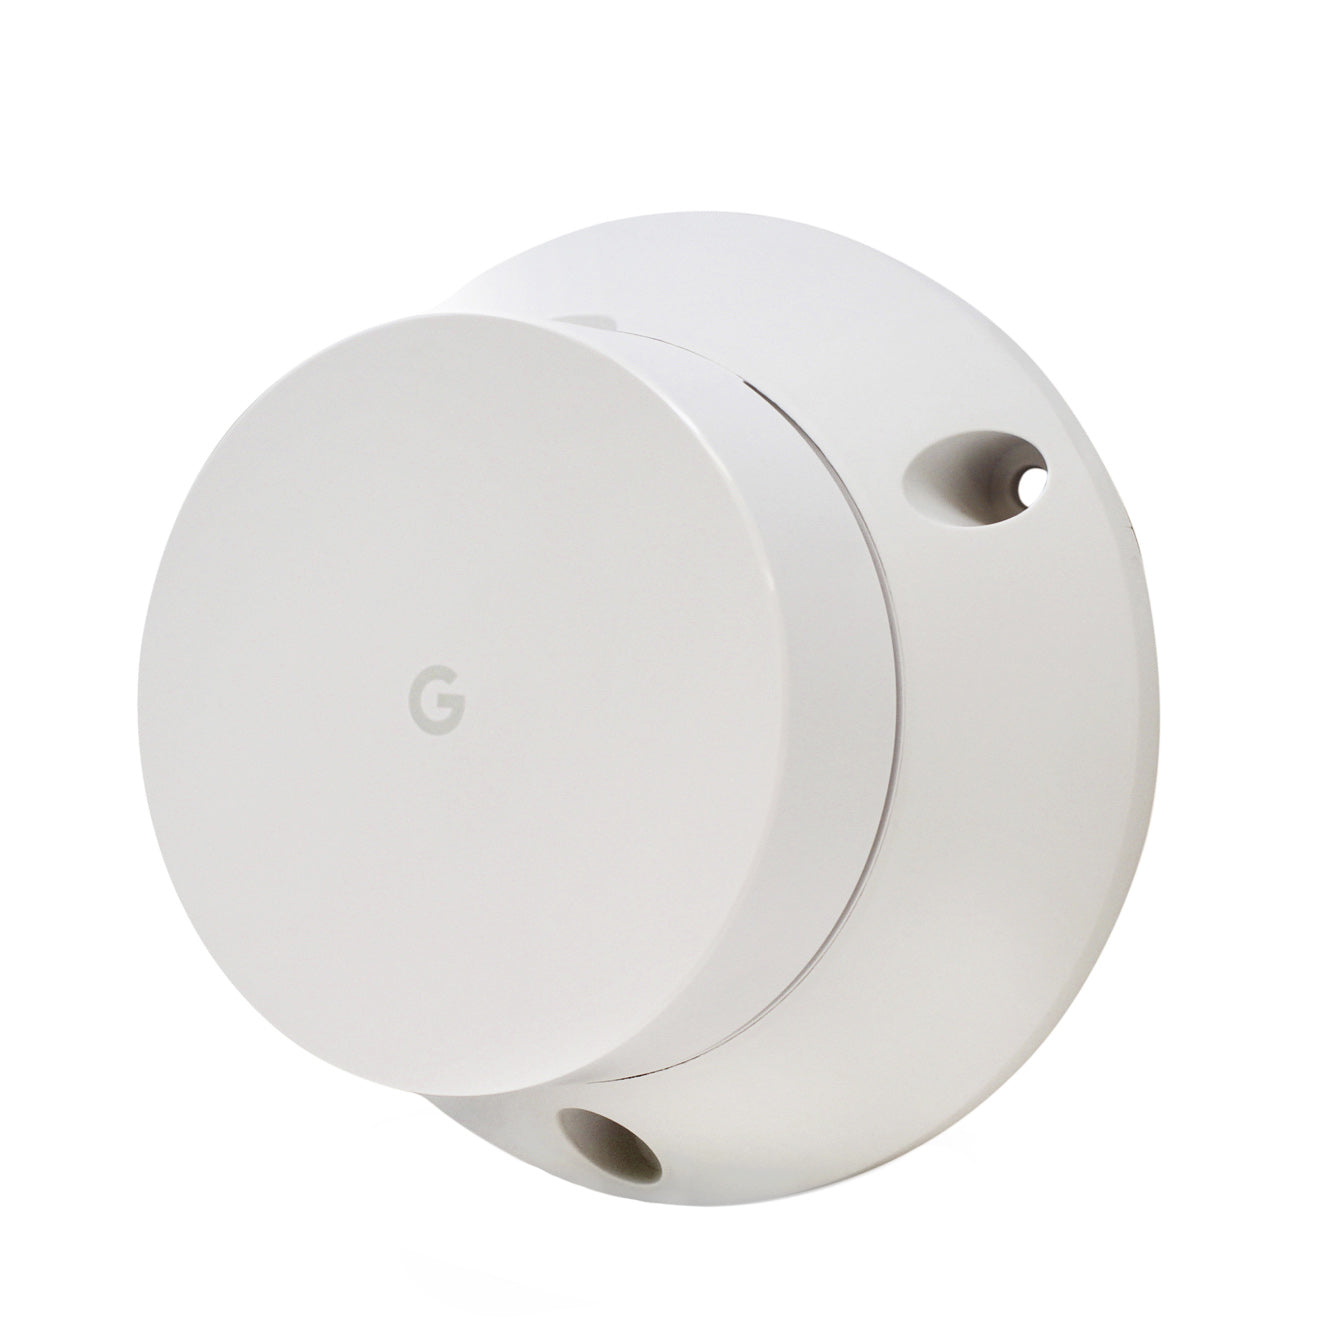 Google Wifi Mount